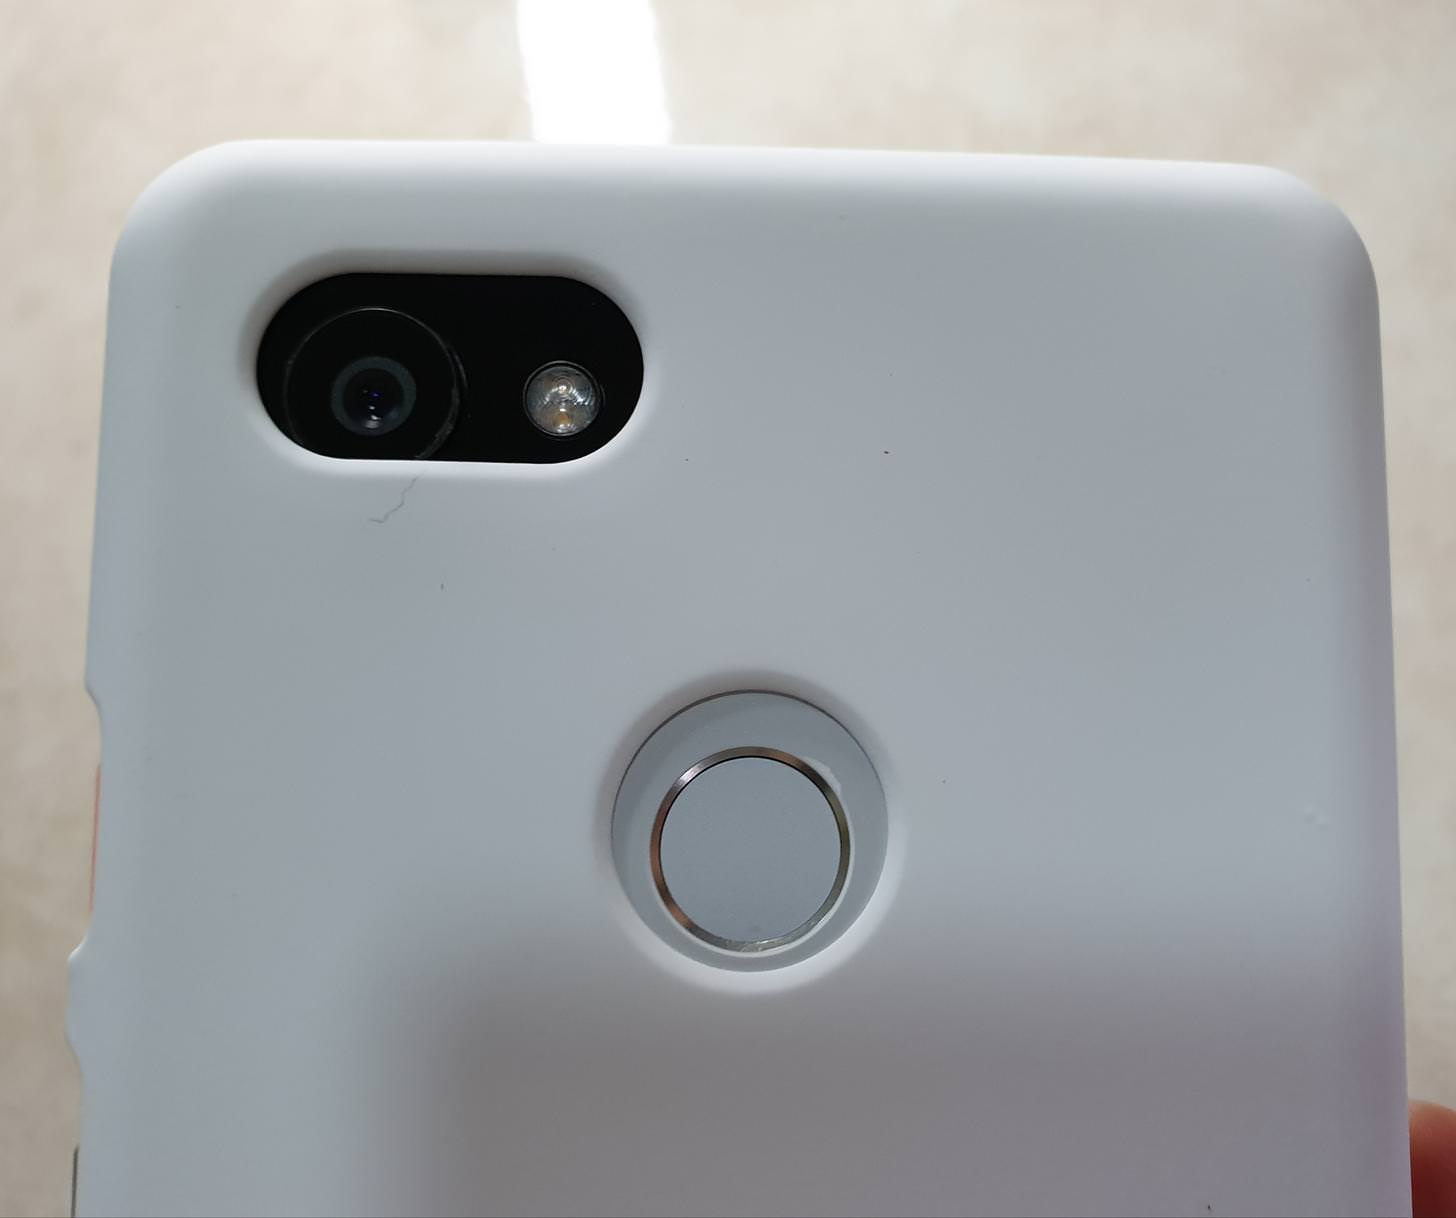 competitive price 18547 71e8c Images show how Google Pixel 3 XL cases fit on Pixel 2 XL - 9to5Google